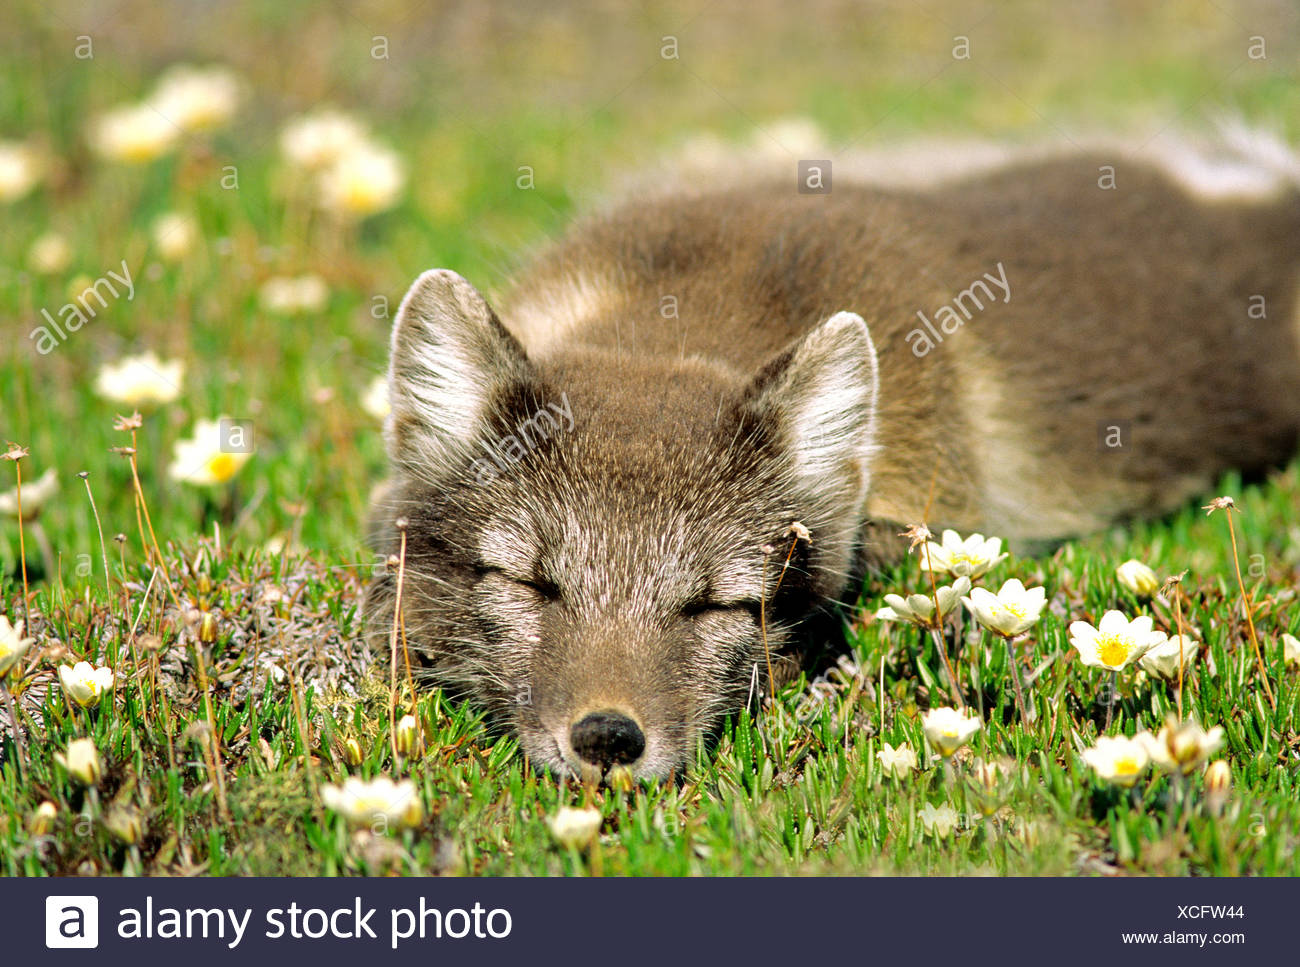 Arctic fox (Alopex lagopus) in summer pelage,    sleeping on a tundra of mountain avens (Dryas integrifolia), Arctic Canada. - Stock Image